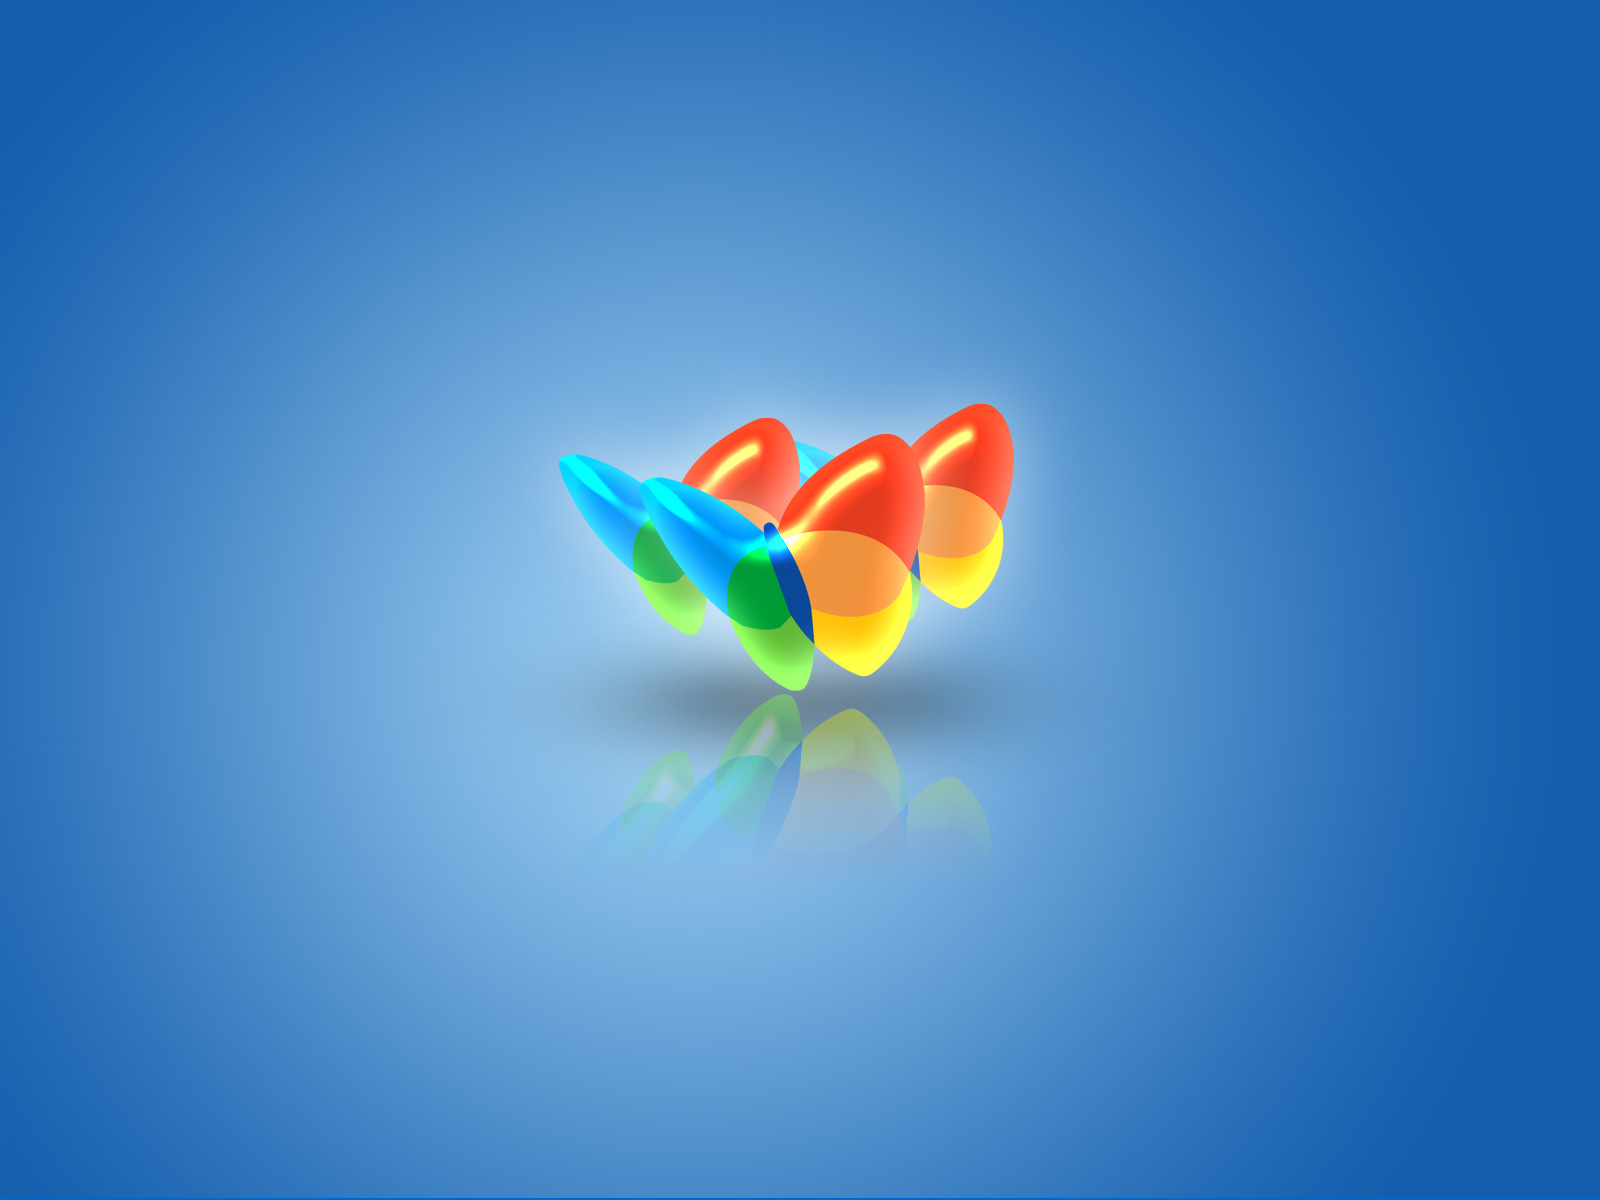 50 msn wallpapers for desktop on wallpapersafari - Desktop wallpaper 1600x1200 ...